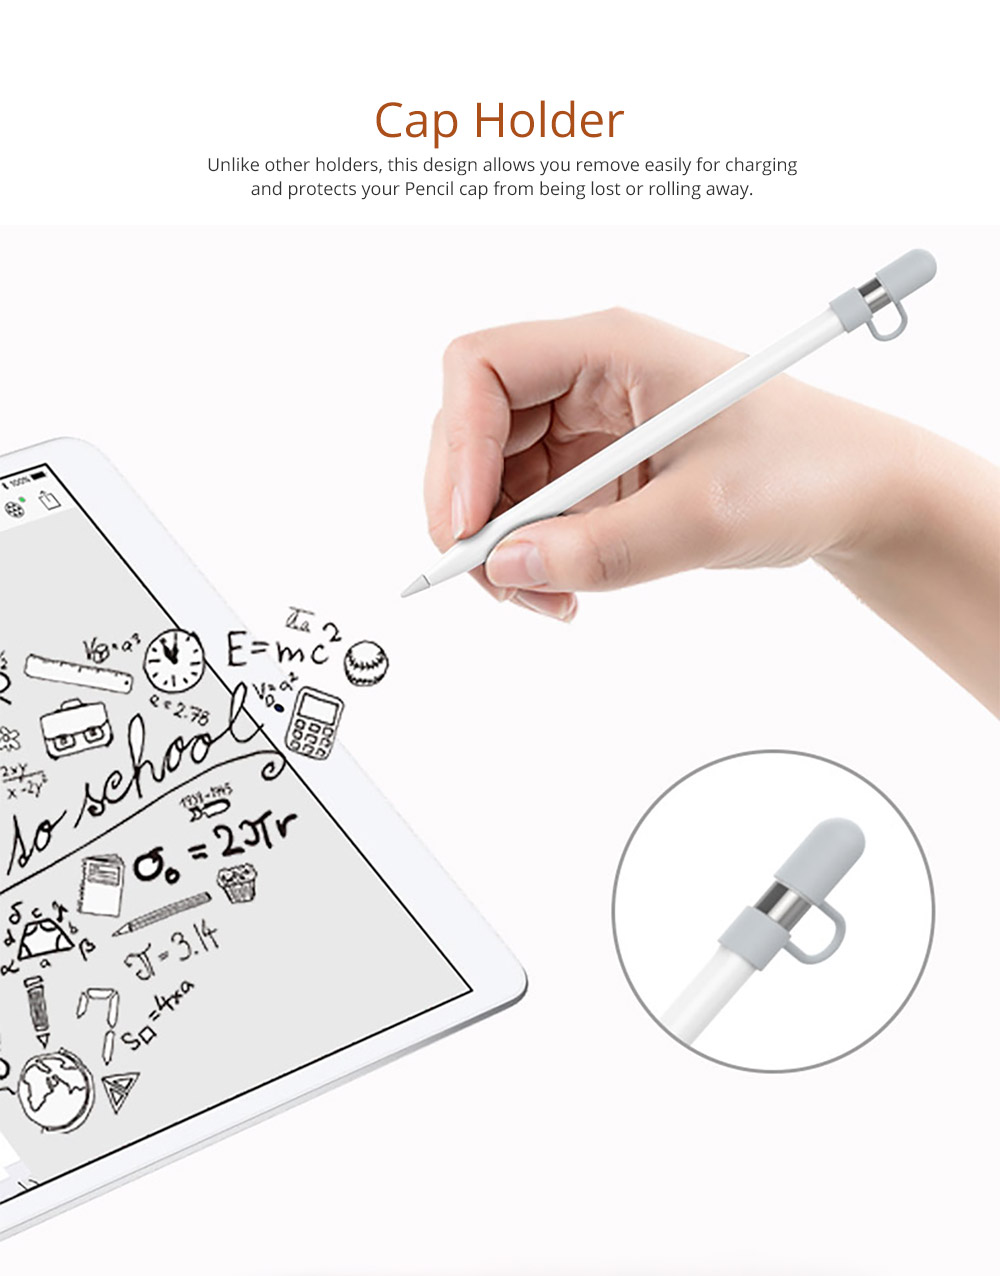 Fashionable Silicone Stylus Cover, Premium Soft Case for Apple Pencil 9.7/12.9/10.5 inch iPad Pro Protective Apple Pencil Sleeve Holder 8